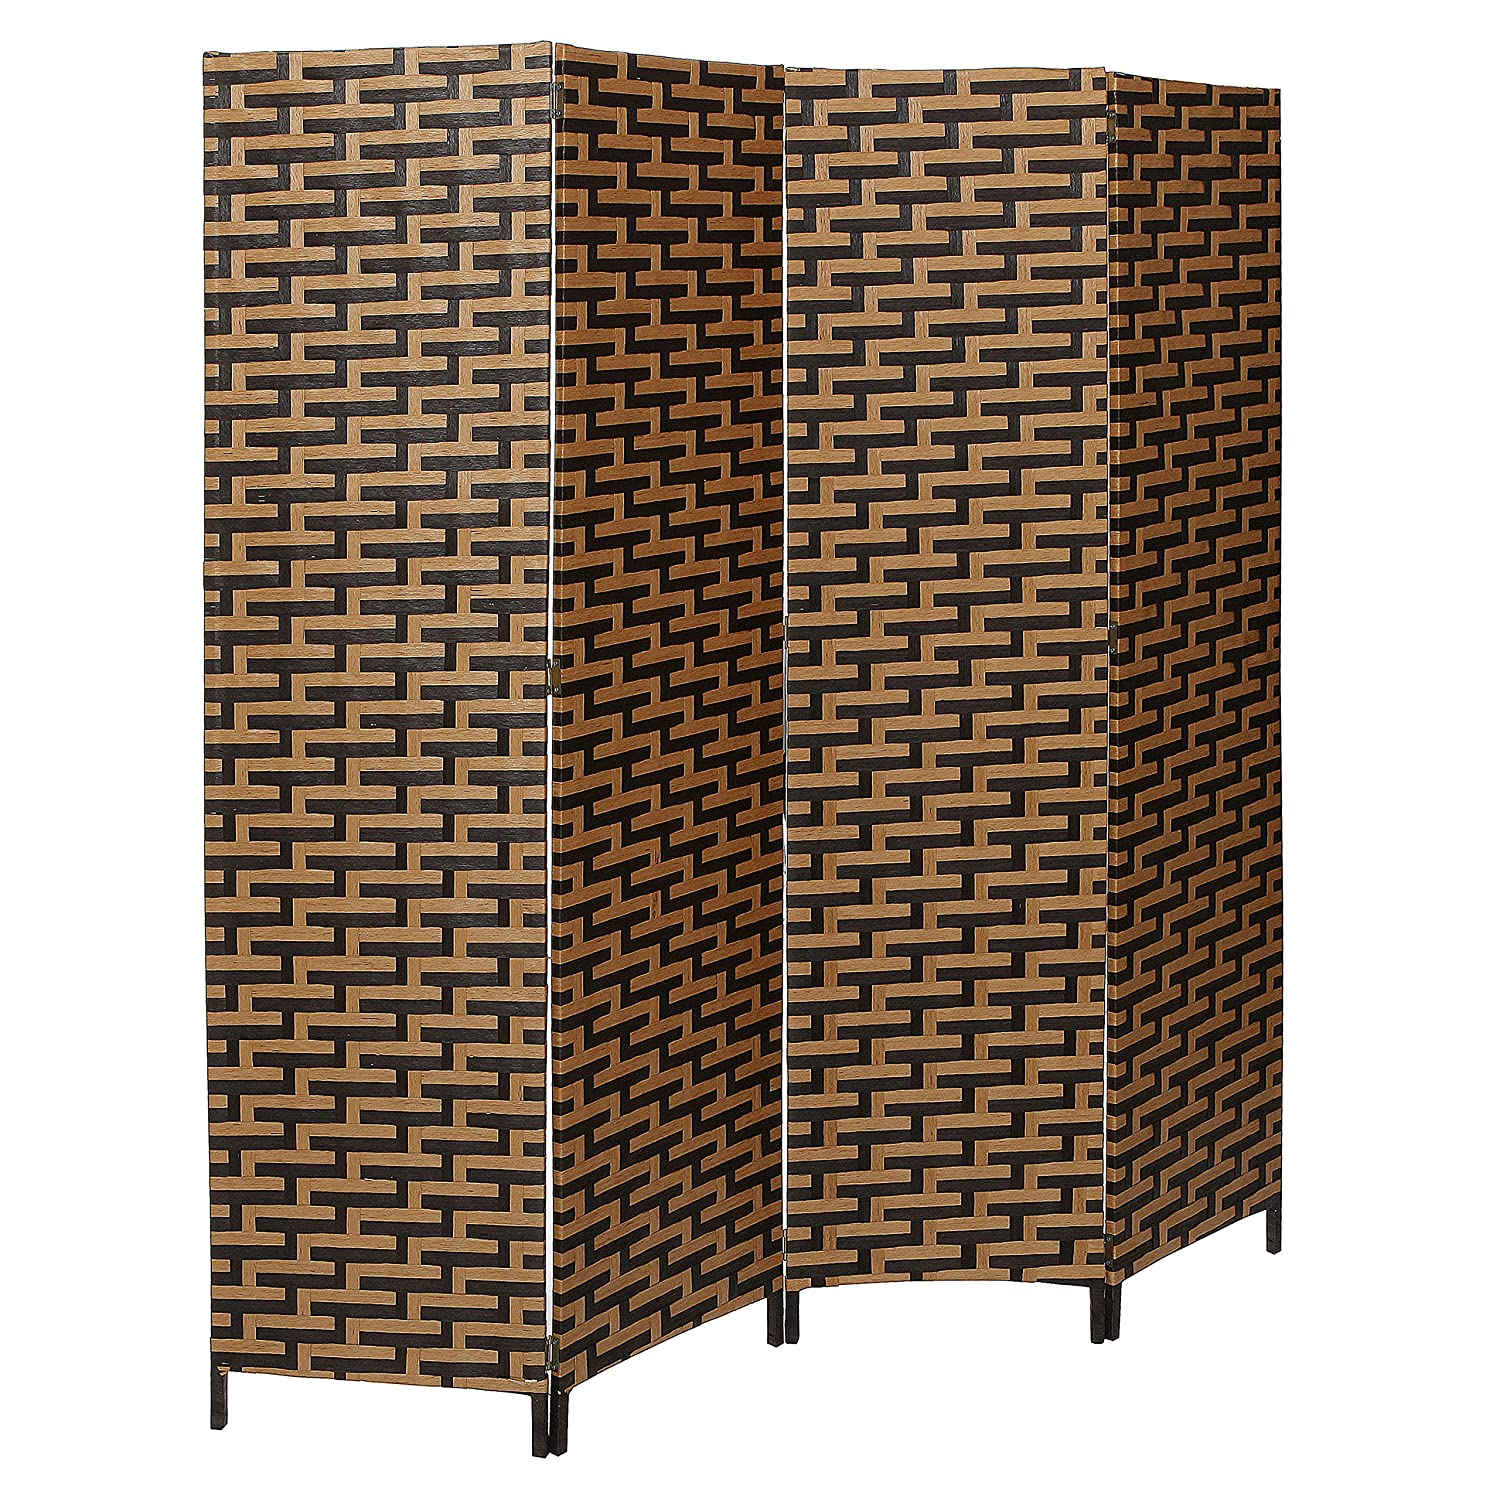 Decorative Freestanding Black & Brown Woven Design 4 Panel Wood Privacy Room  Divider Folding Screen - Room Dividers Amazon.com